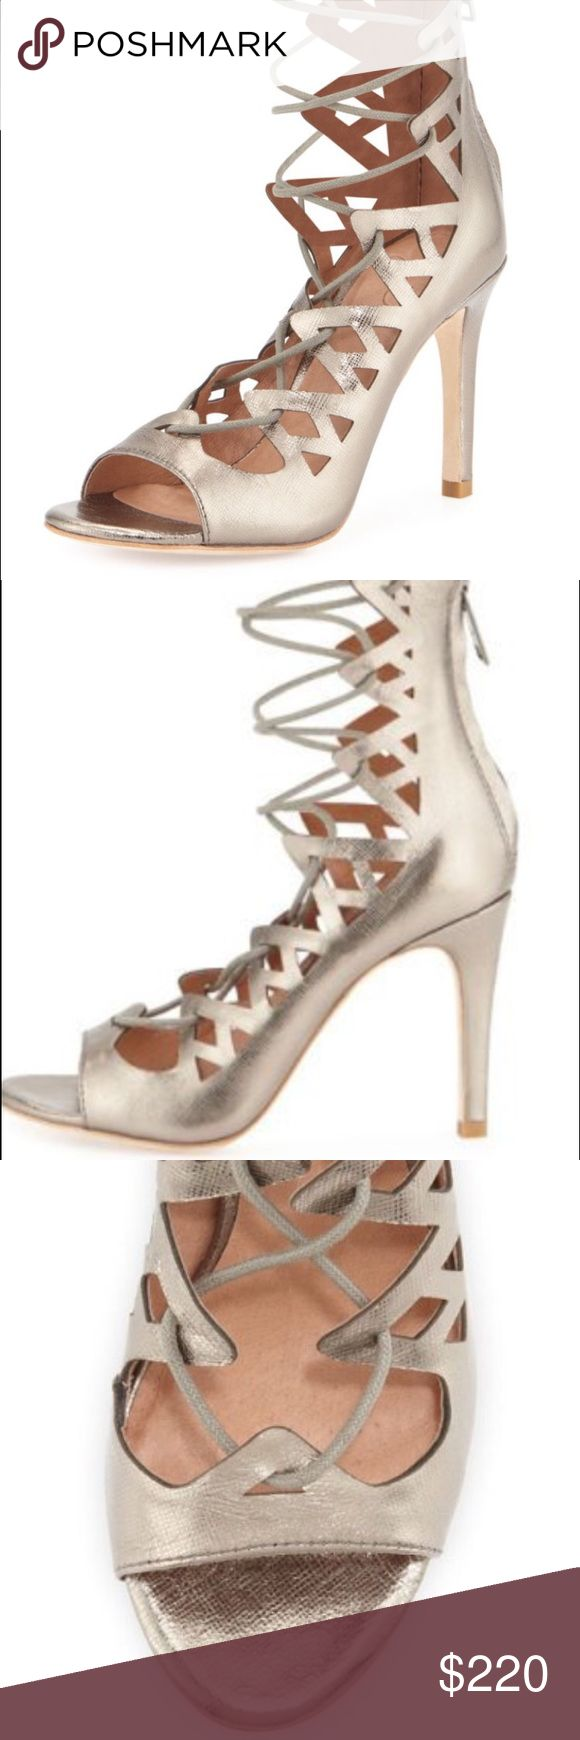 Joie silver pumps BRAND NEW WITH ORIGINAL PACKAGING. Lace up gladiator pumps; 3.8 inches;  back zipper; padded footing; Esther outsoles Joie Shoes Heels